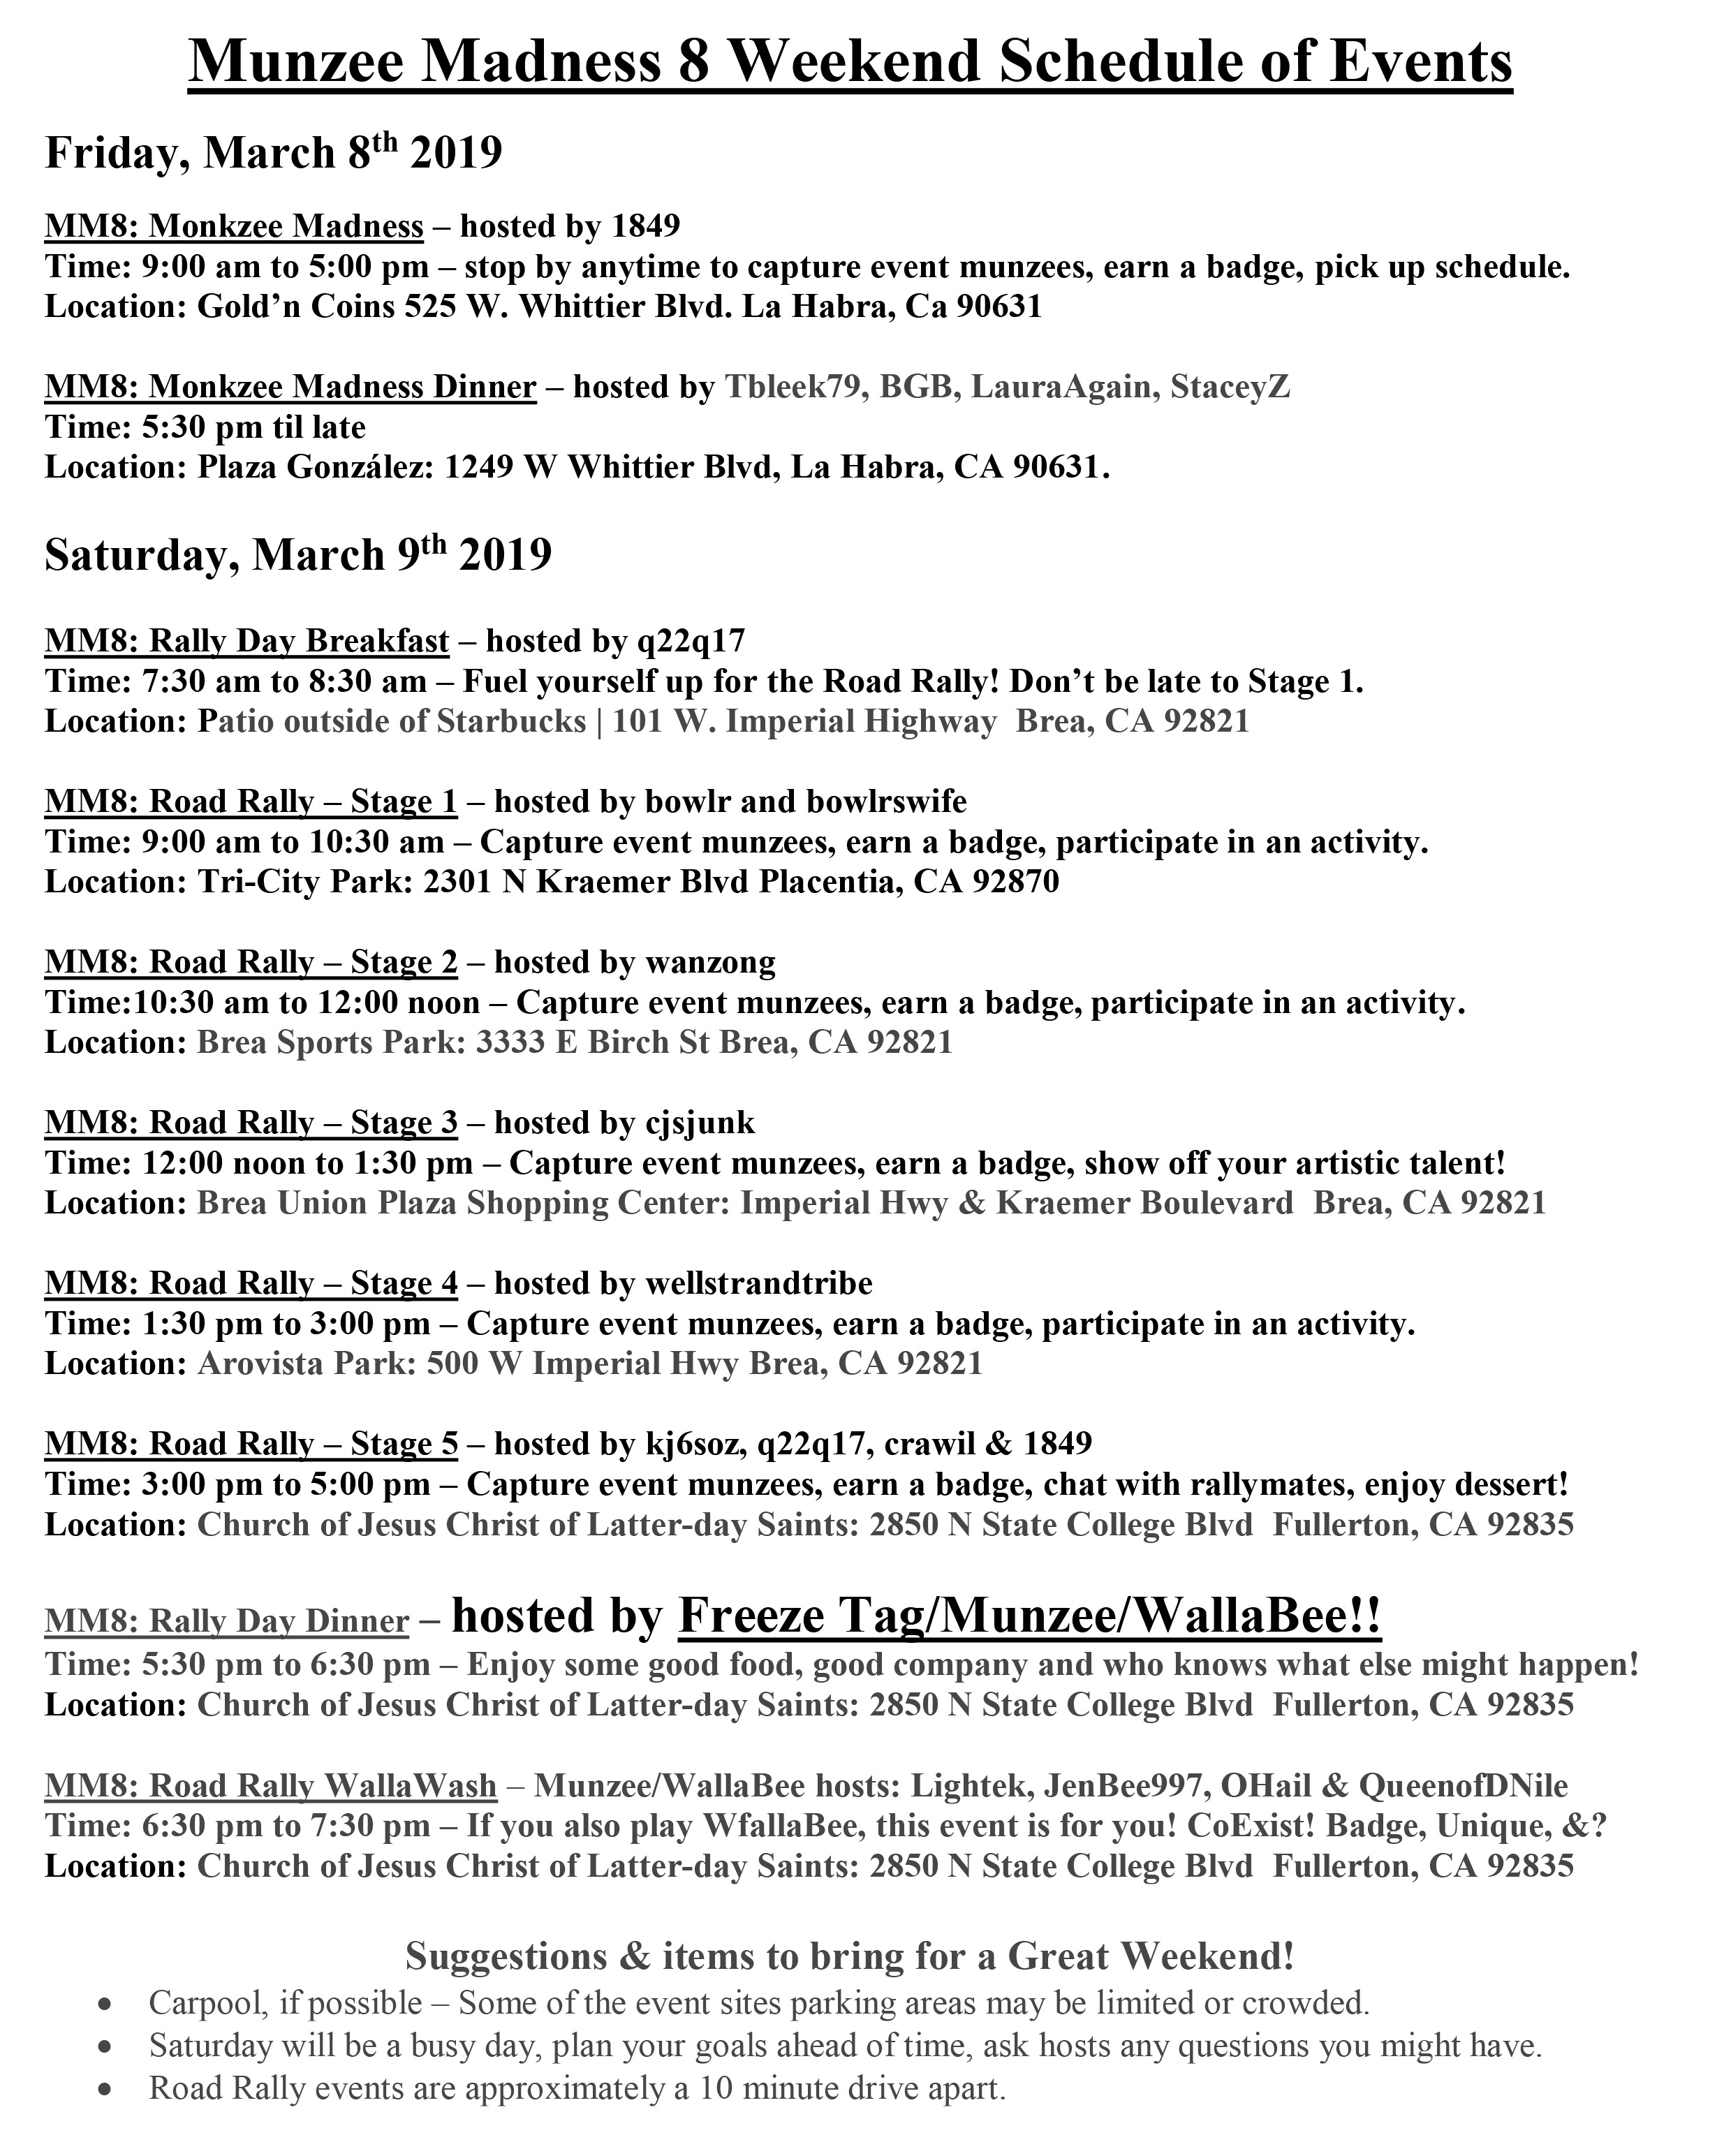 Munzee Madness 8 Schedule of Events.jpg